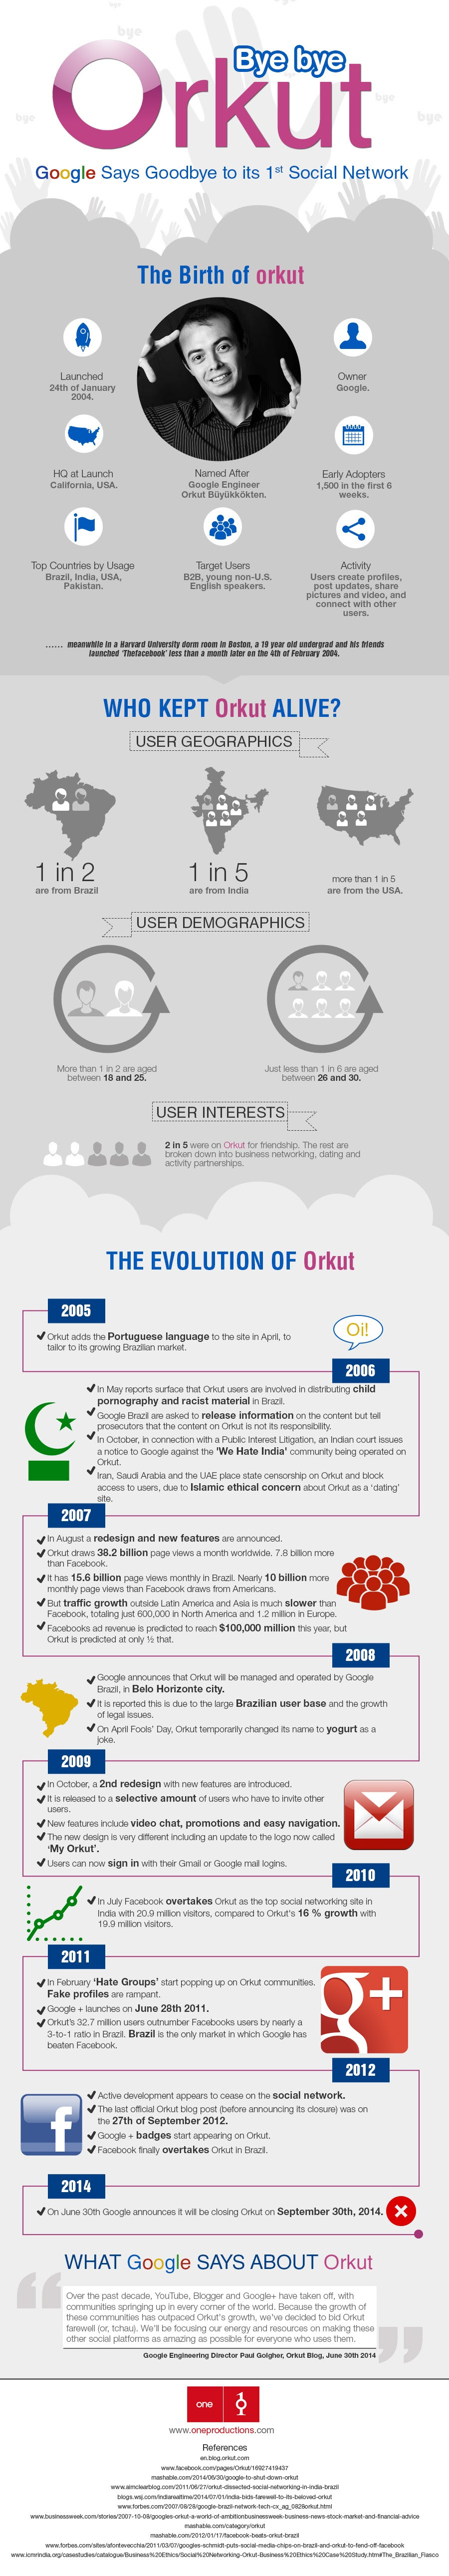 The Rise And Fall Of Orkut - Infographic